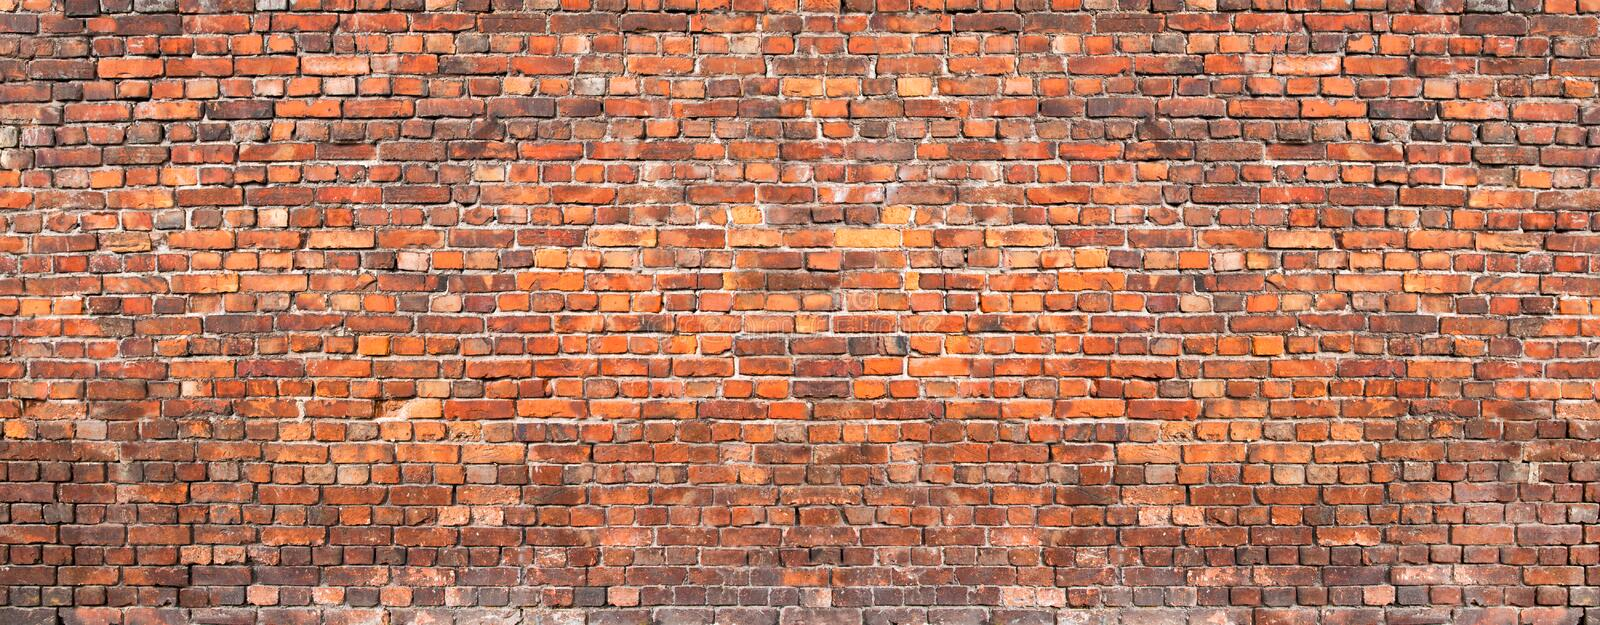 Brick wall background, grunge texture brickwork old house royalty free stock images